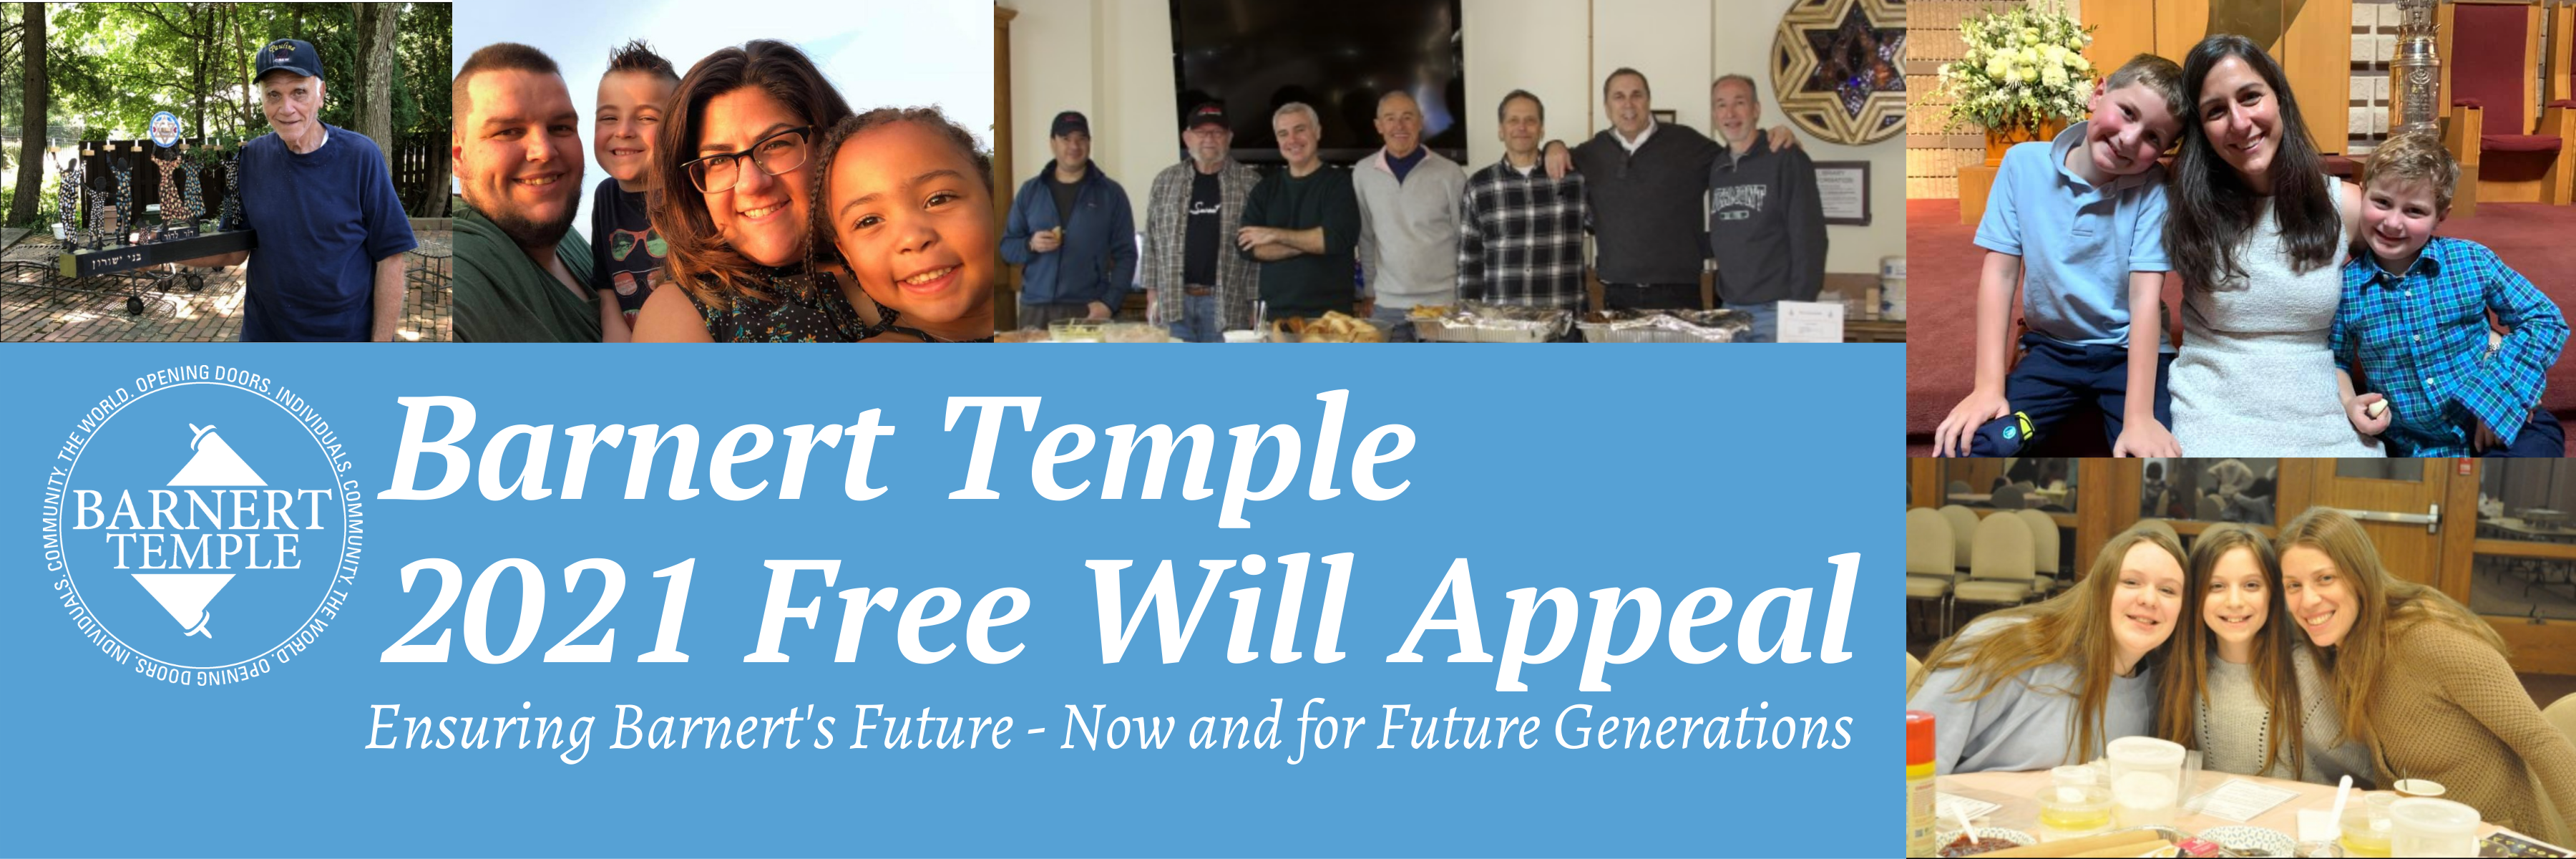 """<a href=""""https://www.barnerttemple.org/form/donate""""                                     target=""""_blank"""">                                                                 <span class=""""slider_title"""">                                     Support This Year's Free Will Appeal                                </span>                                                                 </a>                                                                                                                                                                                       <span class=""""slider_description"""">We hope you all had a meaningful High Holiday experience with Barnert.  Our annual Free Will Appeal is underway, and we hope you will choose to show your support.  No donation is too small, and every contribution makes a difference.  Click above to doante today.</span>"""